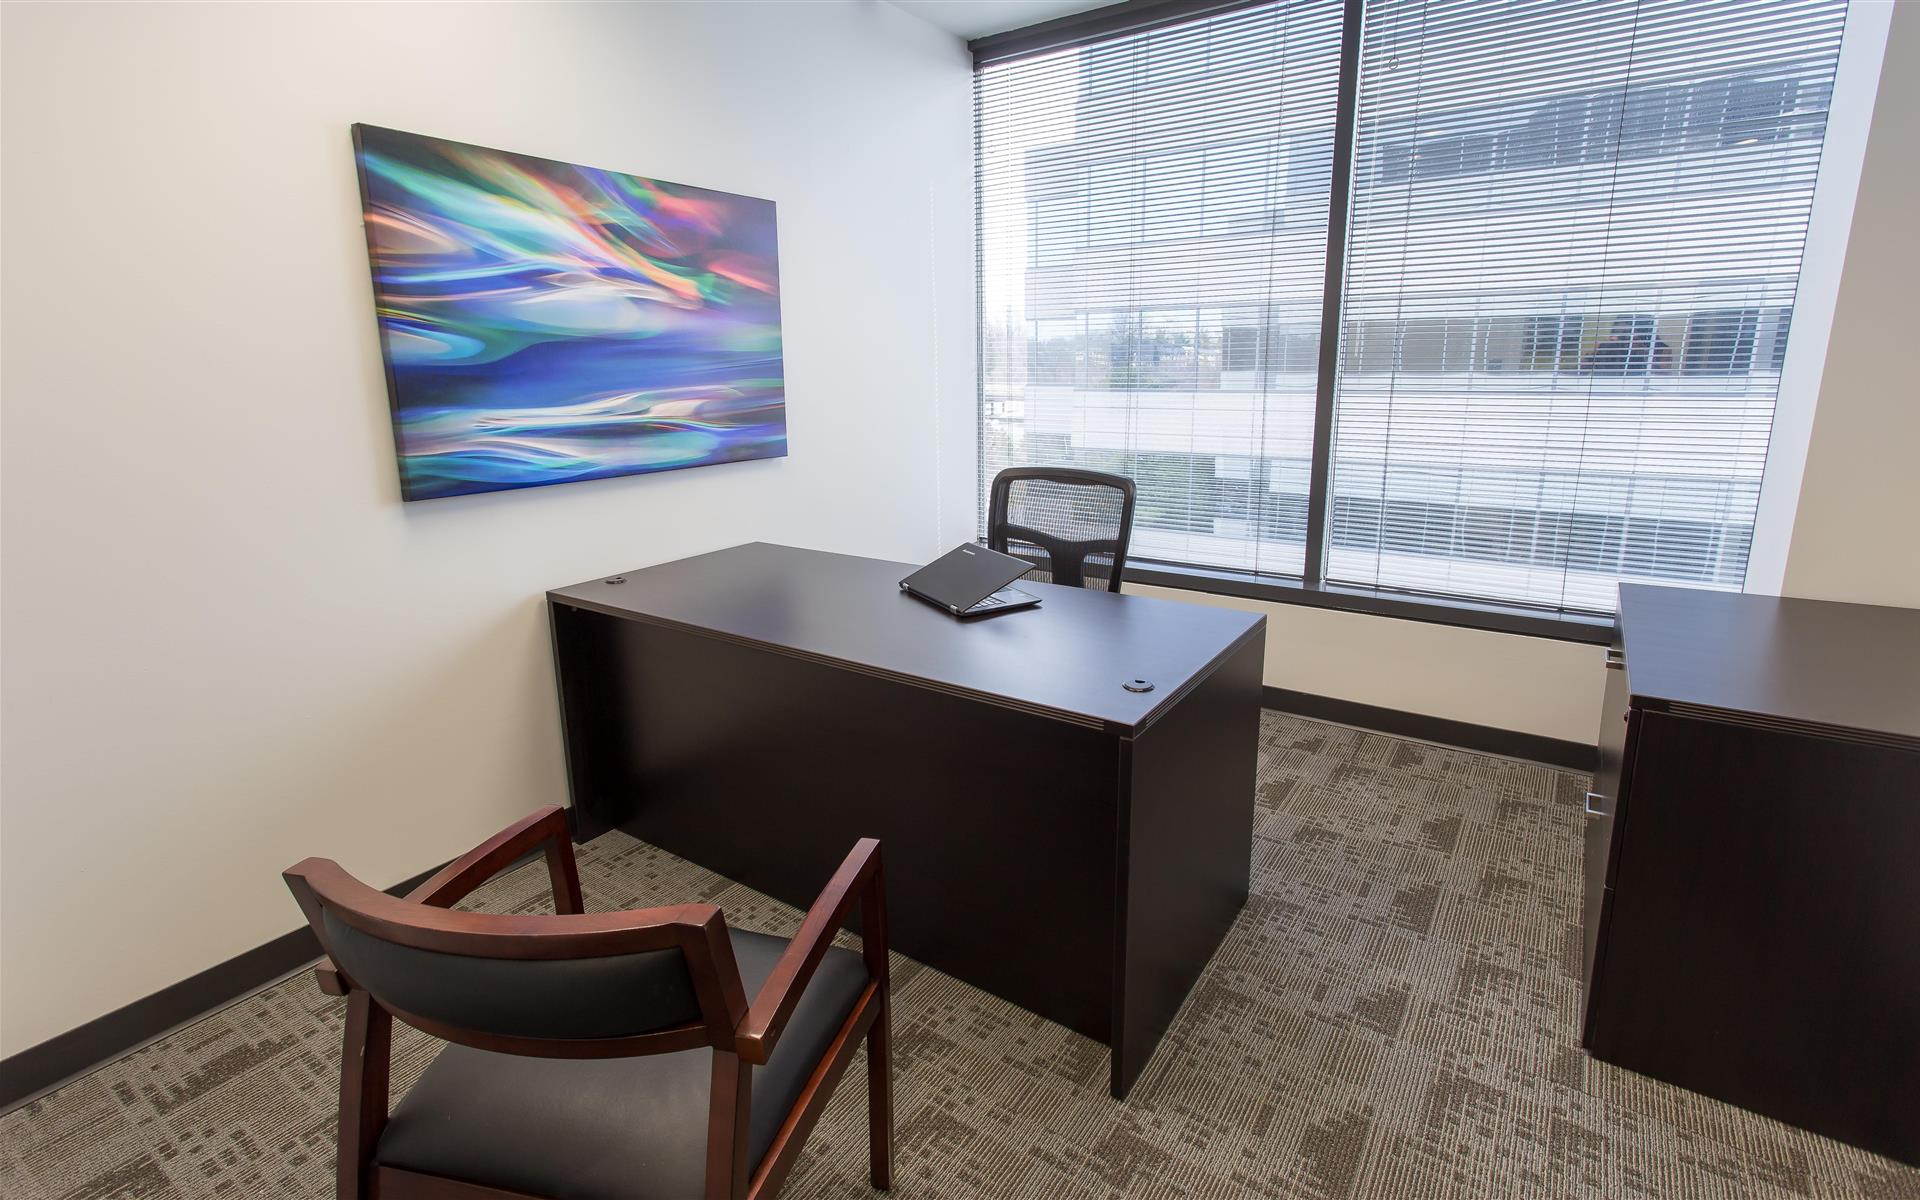 office furniture small office 2275 17. Delighful 2275 Working At ExecuSuites I270 Rockville To Office Furniture Small 2275 17 LiquidSpace